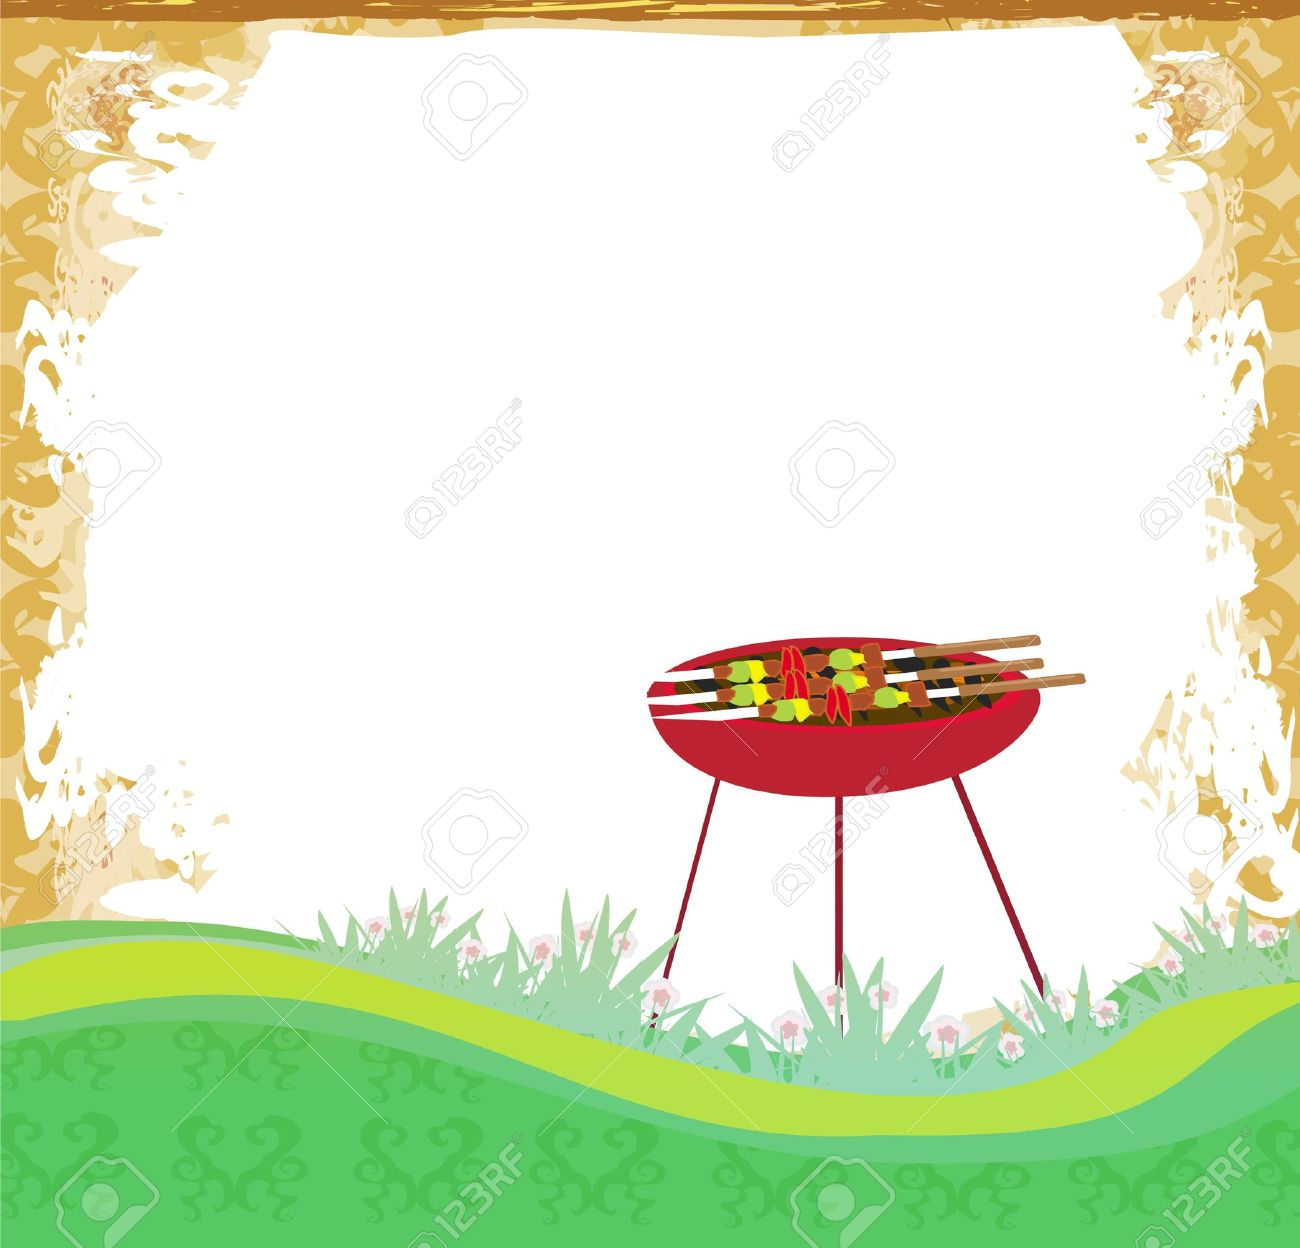 1 344 backyard bbq cliparts stock vector and royalty free